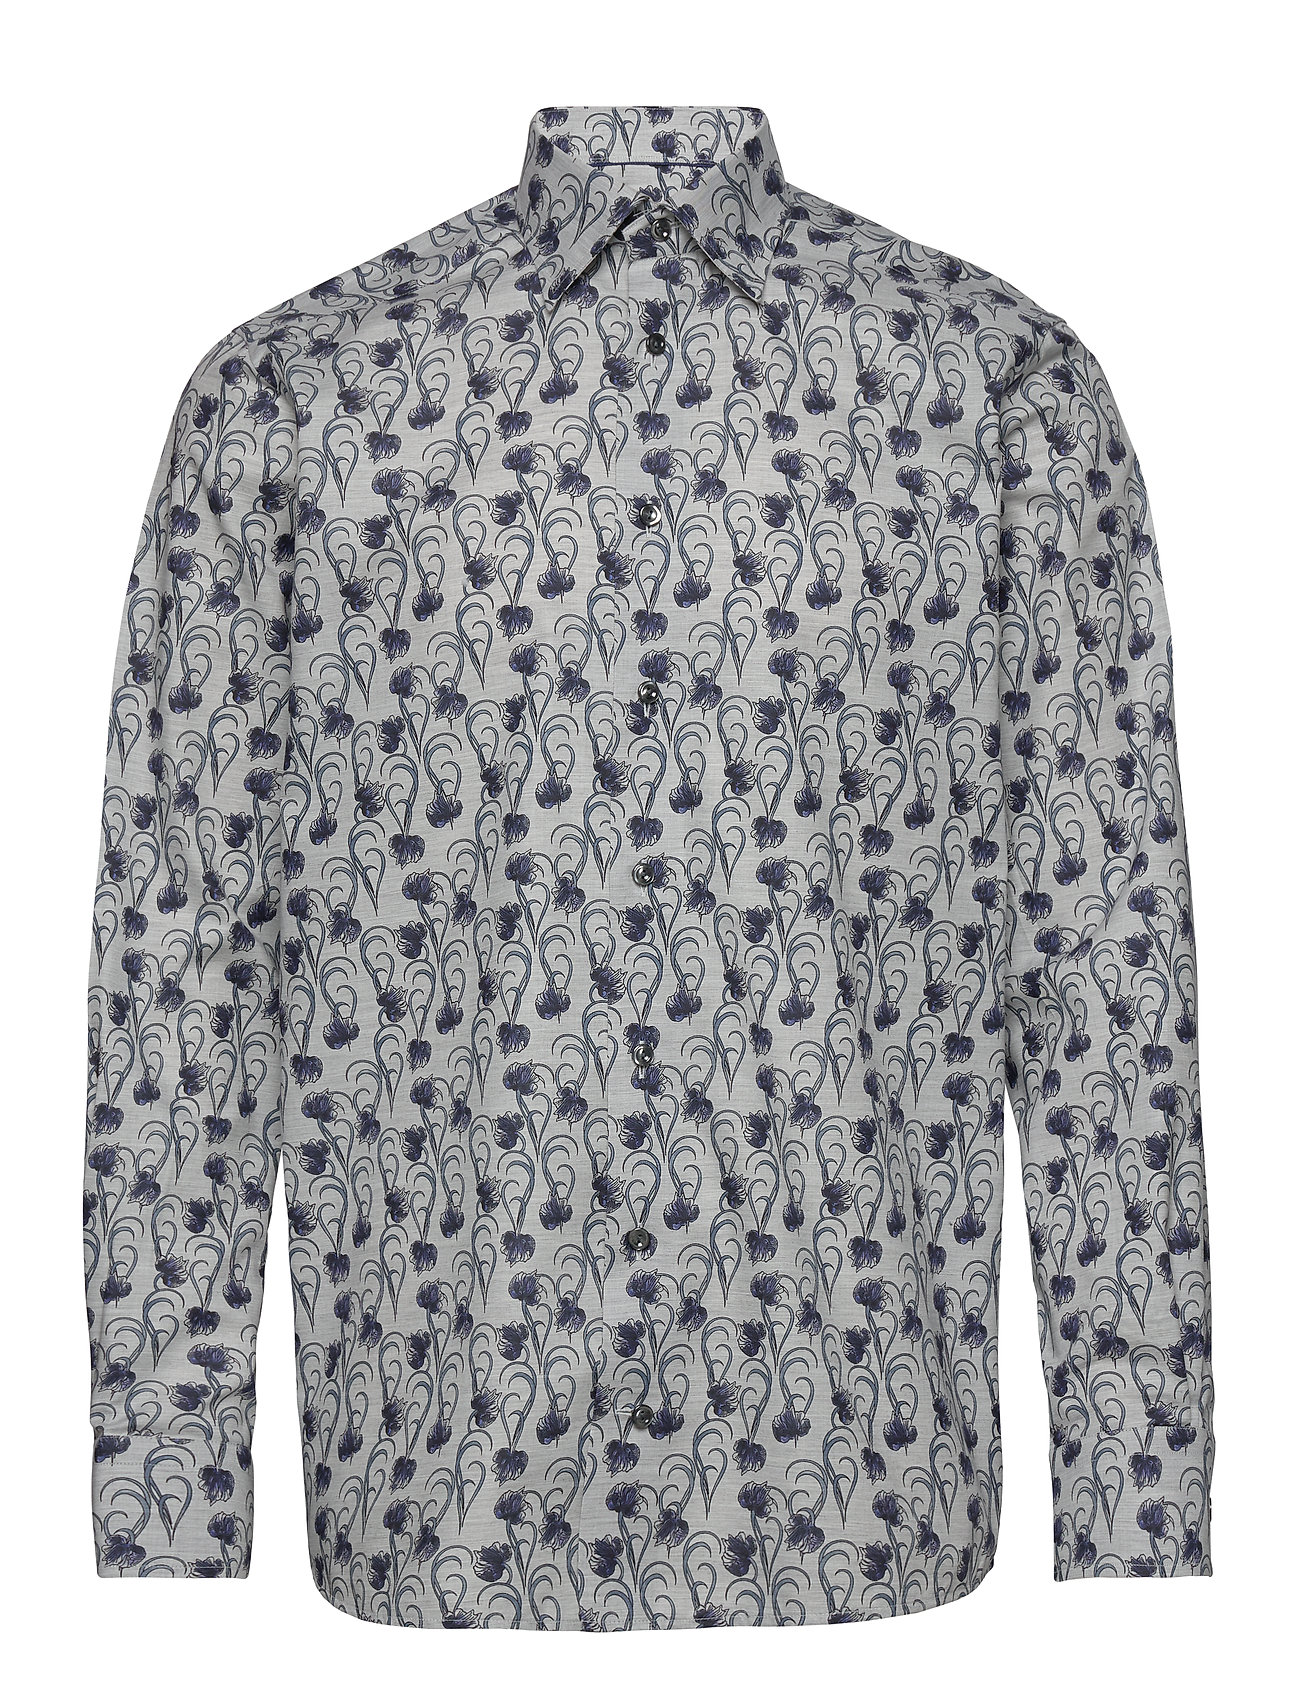 Eton Floral Flannel Shirt - Contemporary fit - GREY